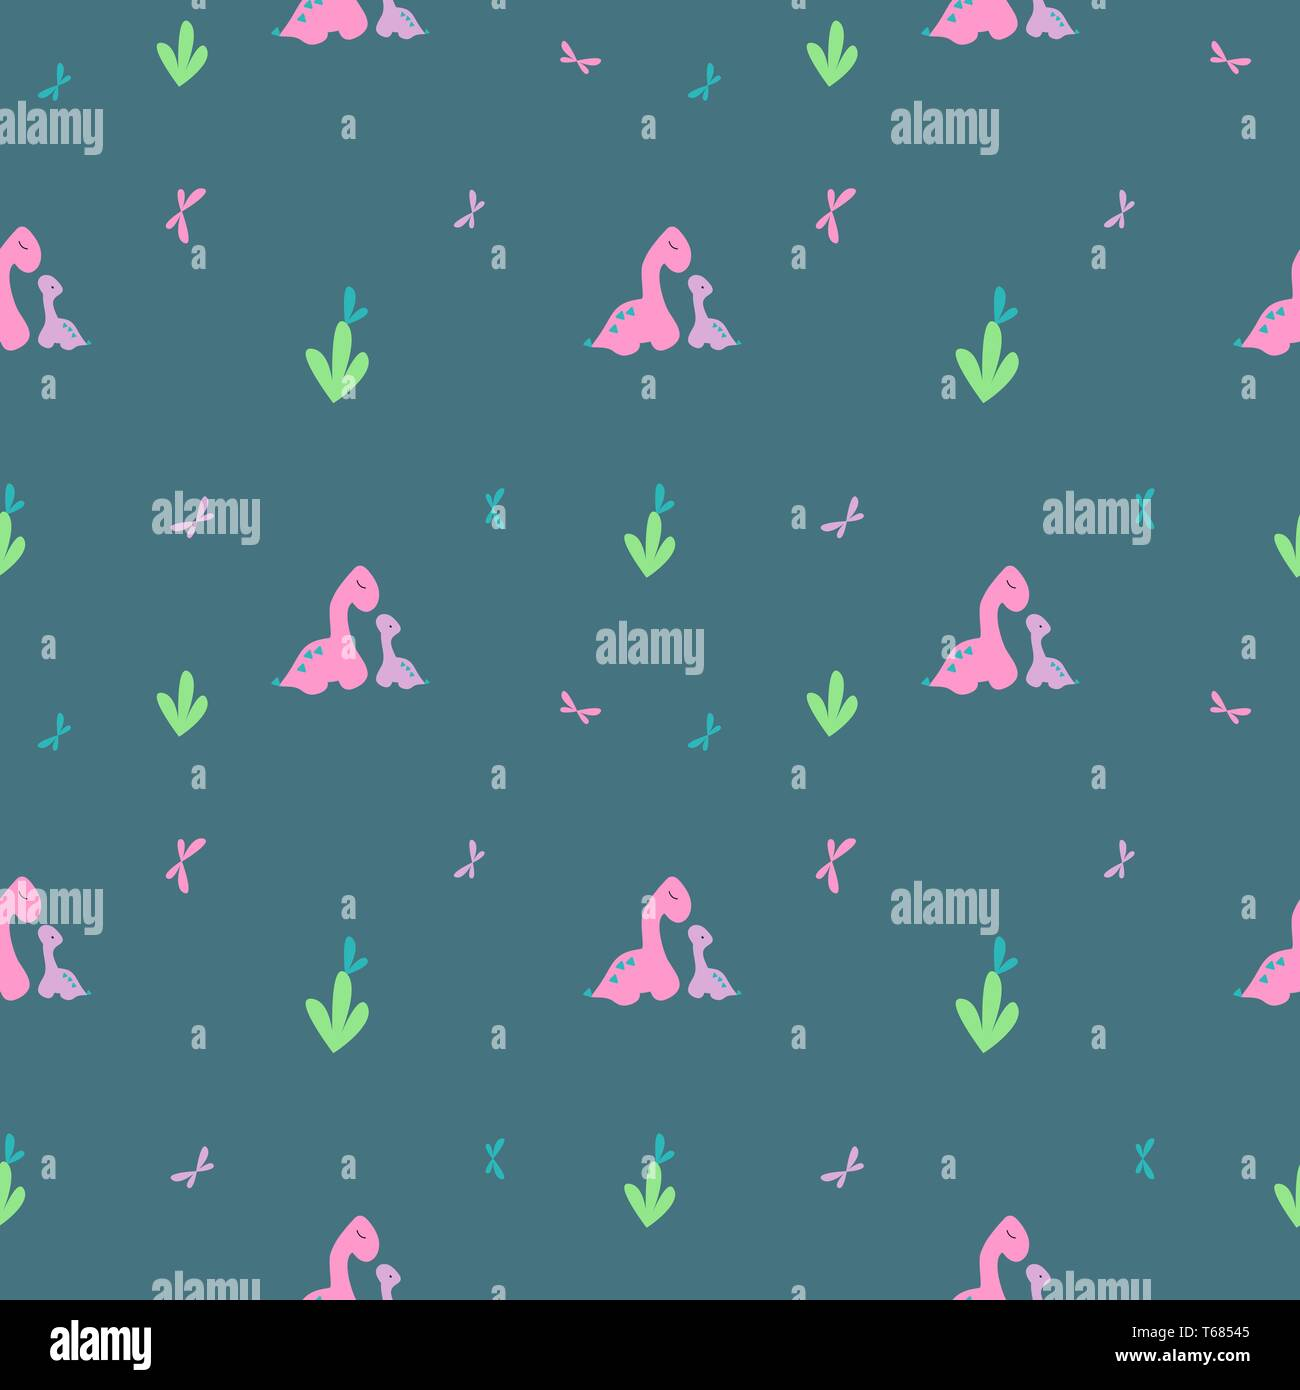 Gentle dino pattern. Pink big, purple little dinosaur and butterflies. Print tile for textiles, clothing. Background for blog or banner. Cards invitat - Stock Image